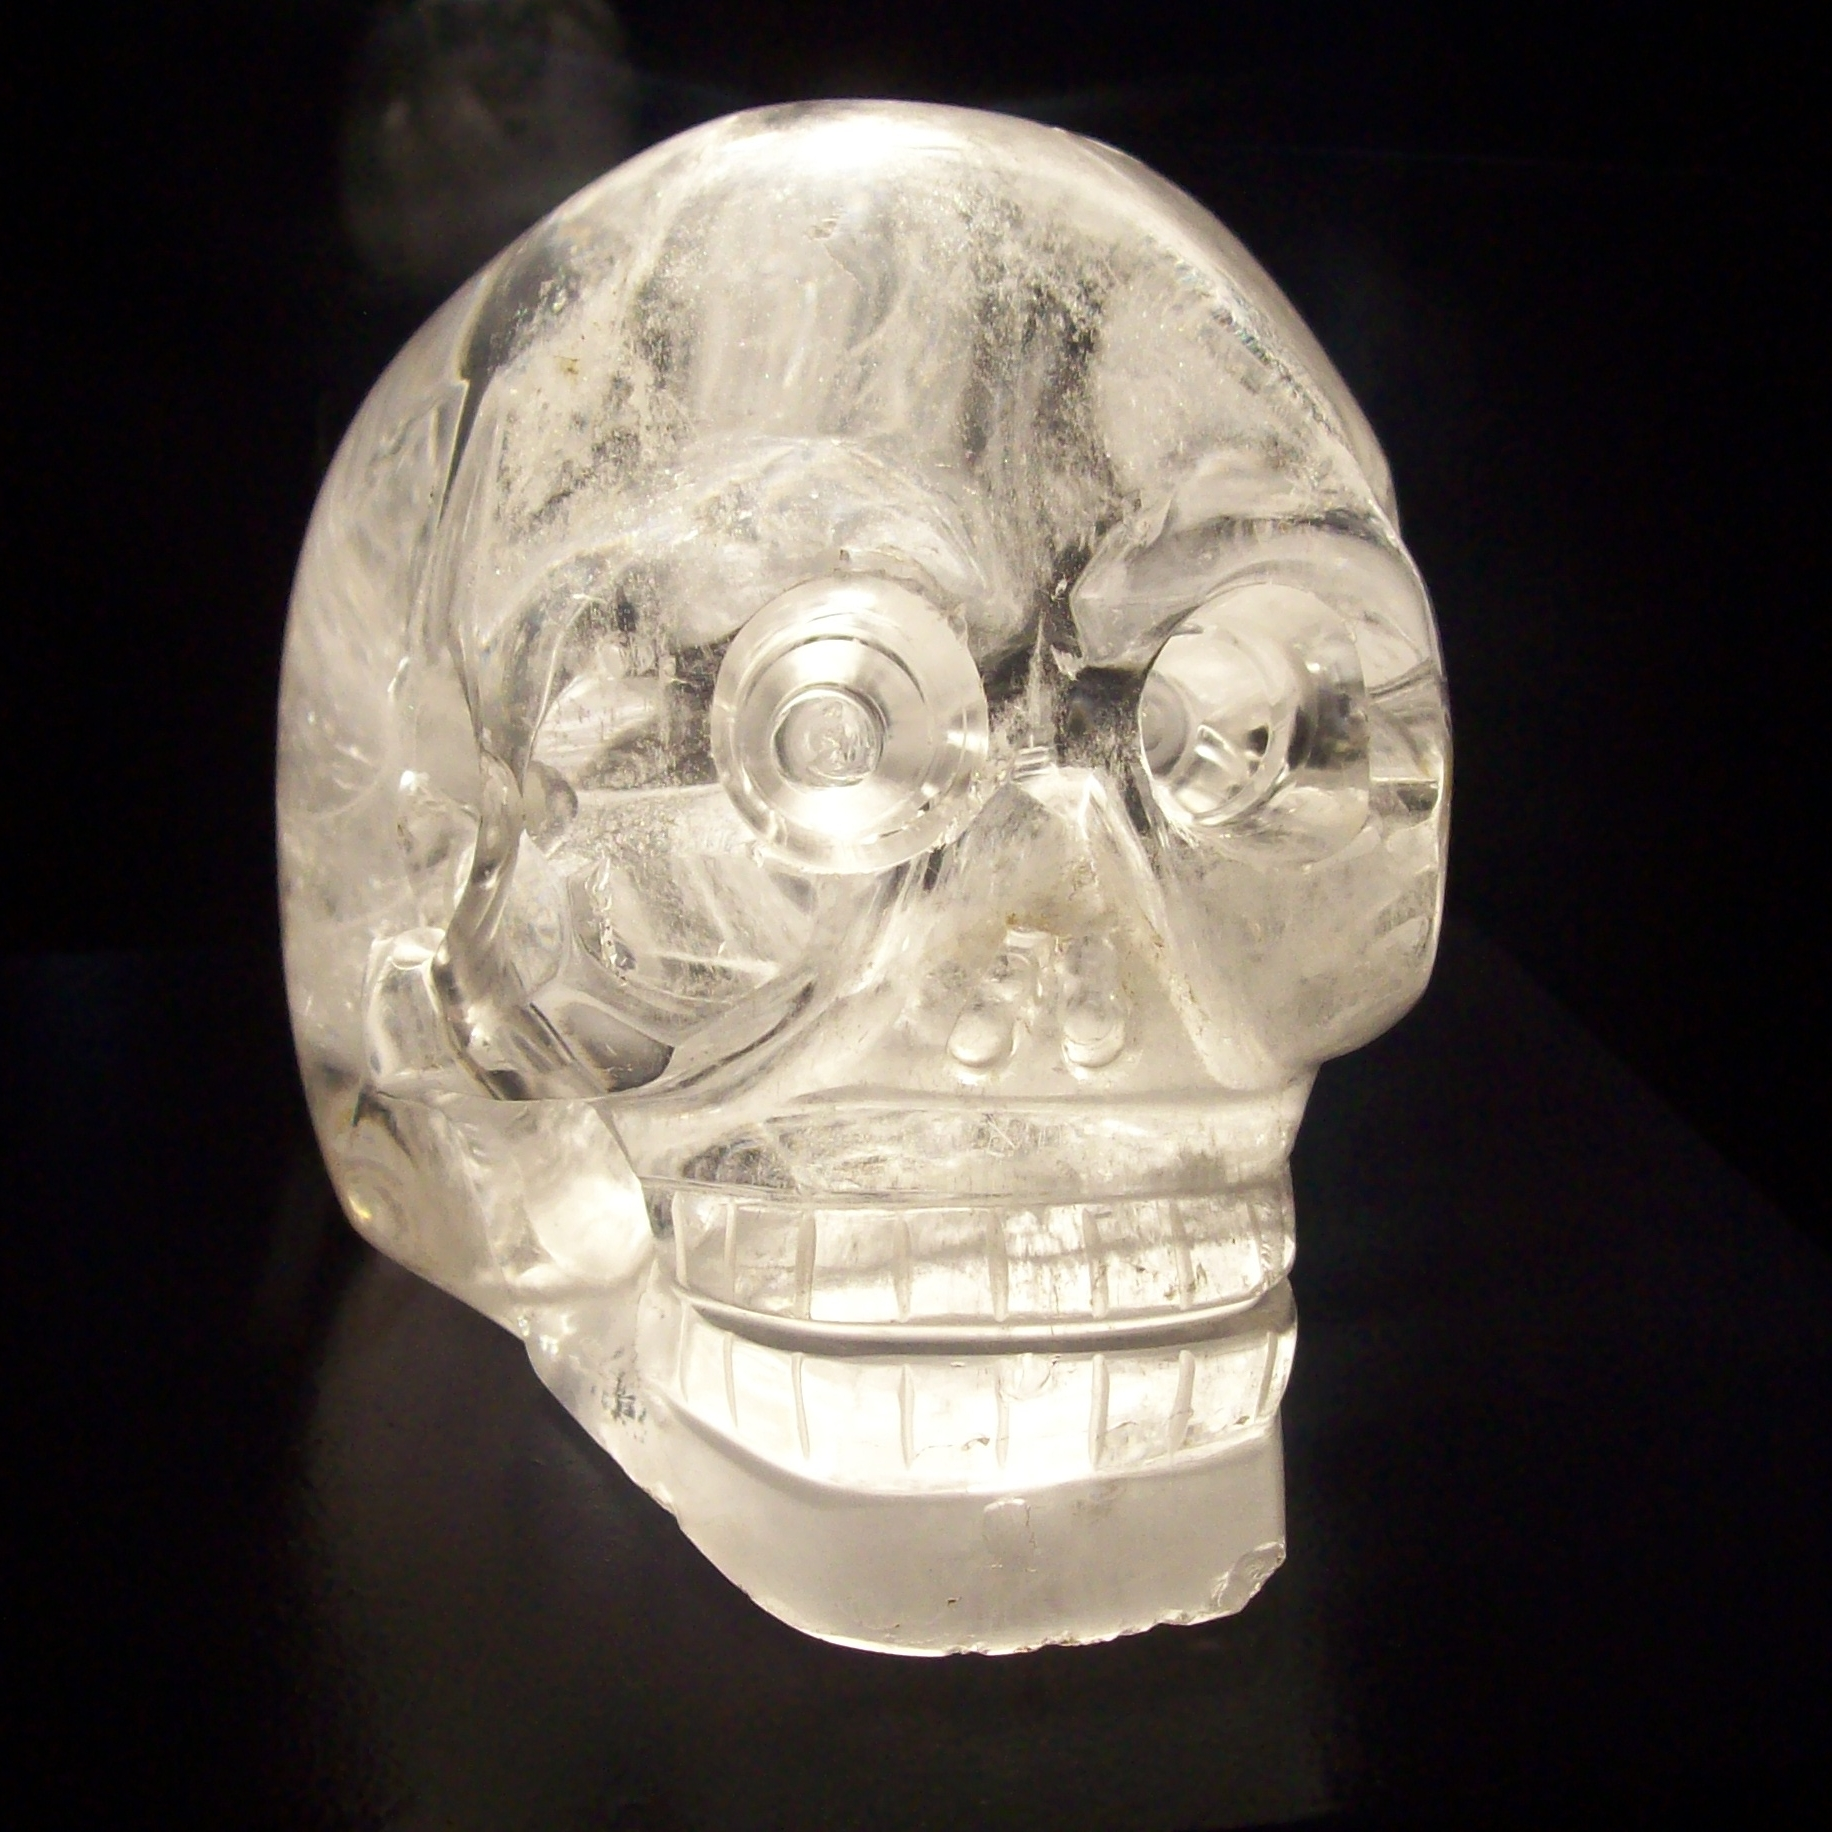 Crystal Skulls Symbolism Crystal Skull at The Musée du